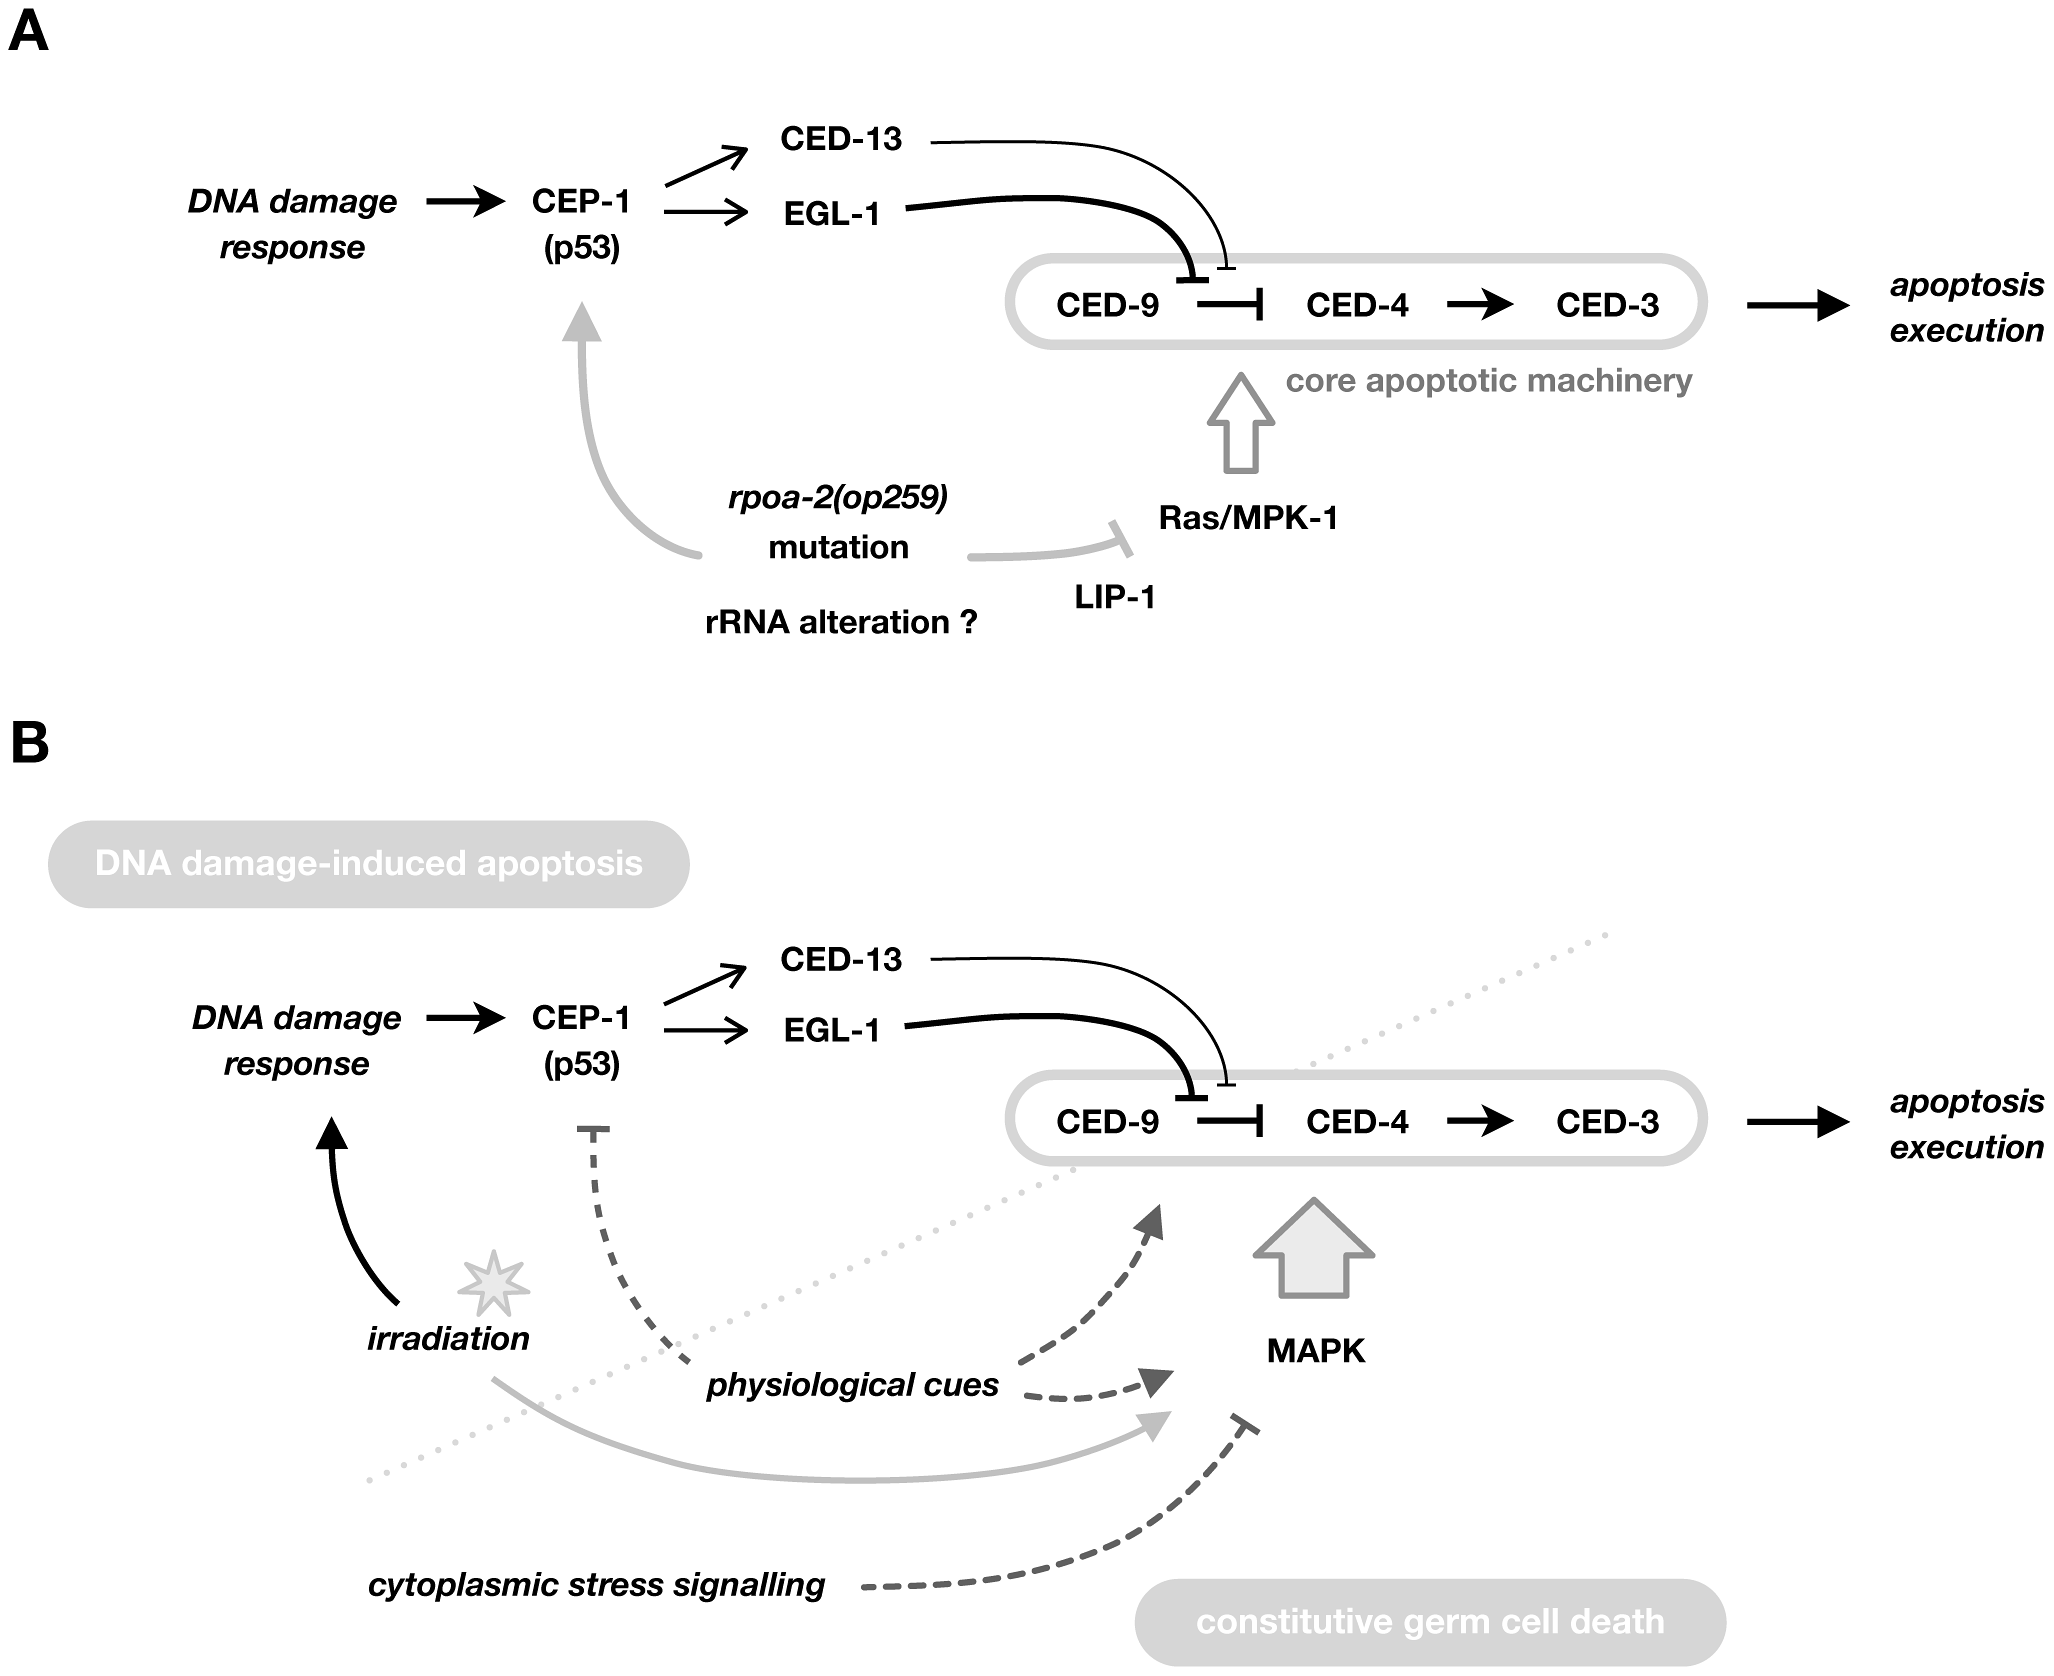 Model for the role of RPOA-2 and Ras/MAPK in determining apoptosis.